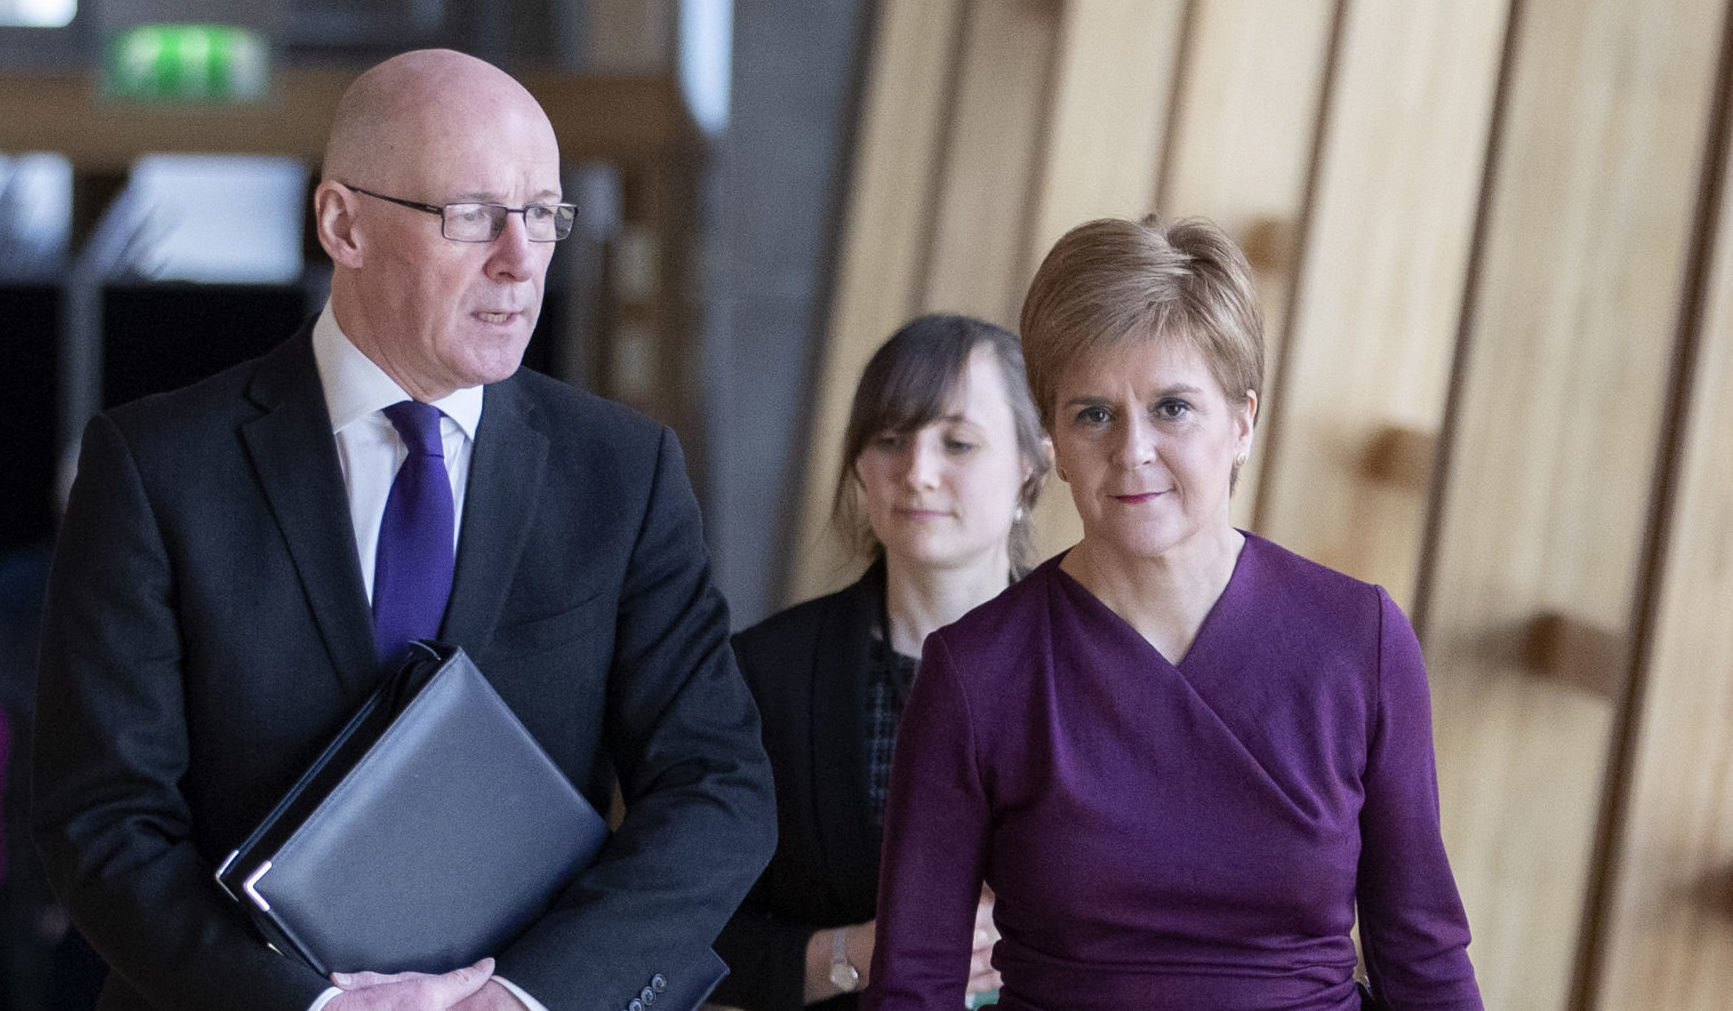 John Swinney and Nicola Sturgeon on their way to the Scottish Parliament debating chamber on Thursday.